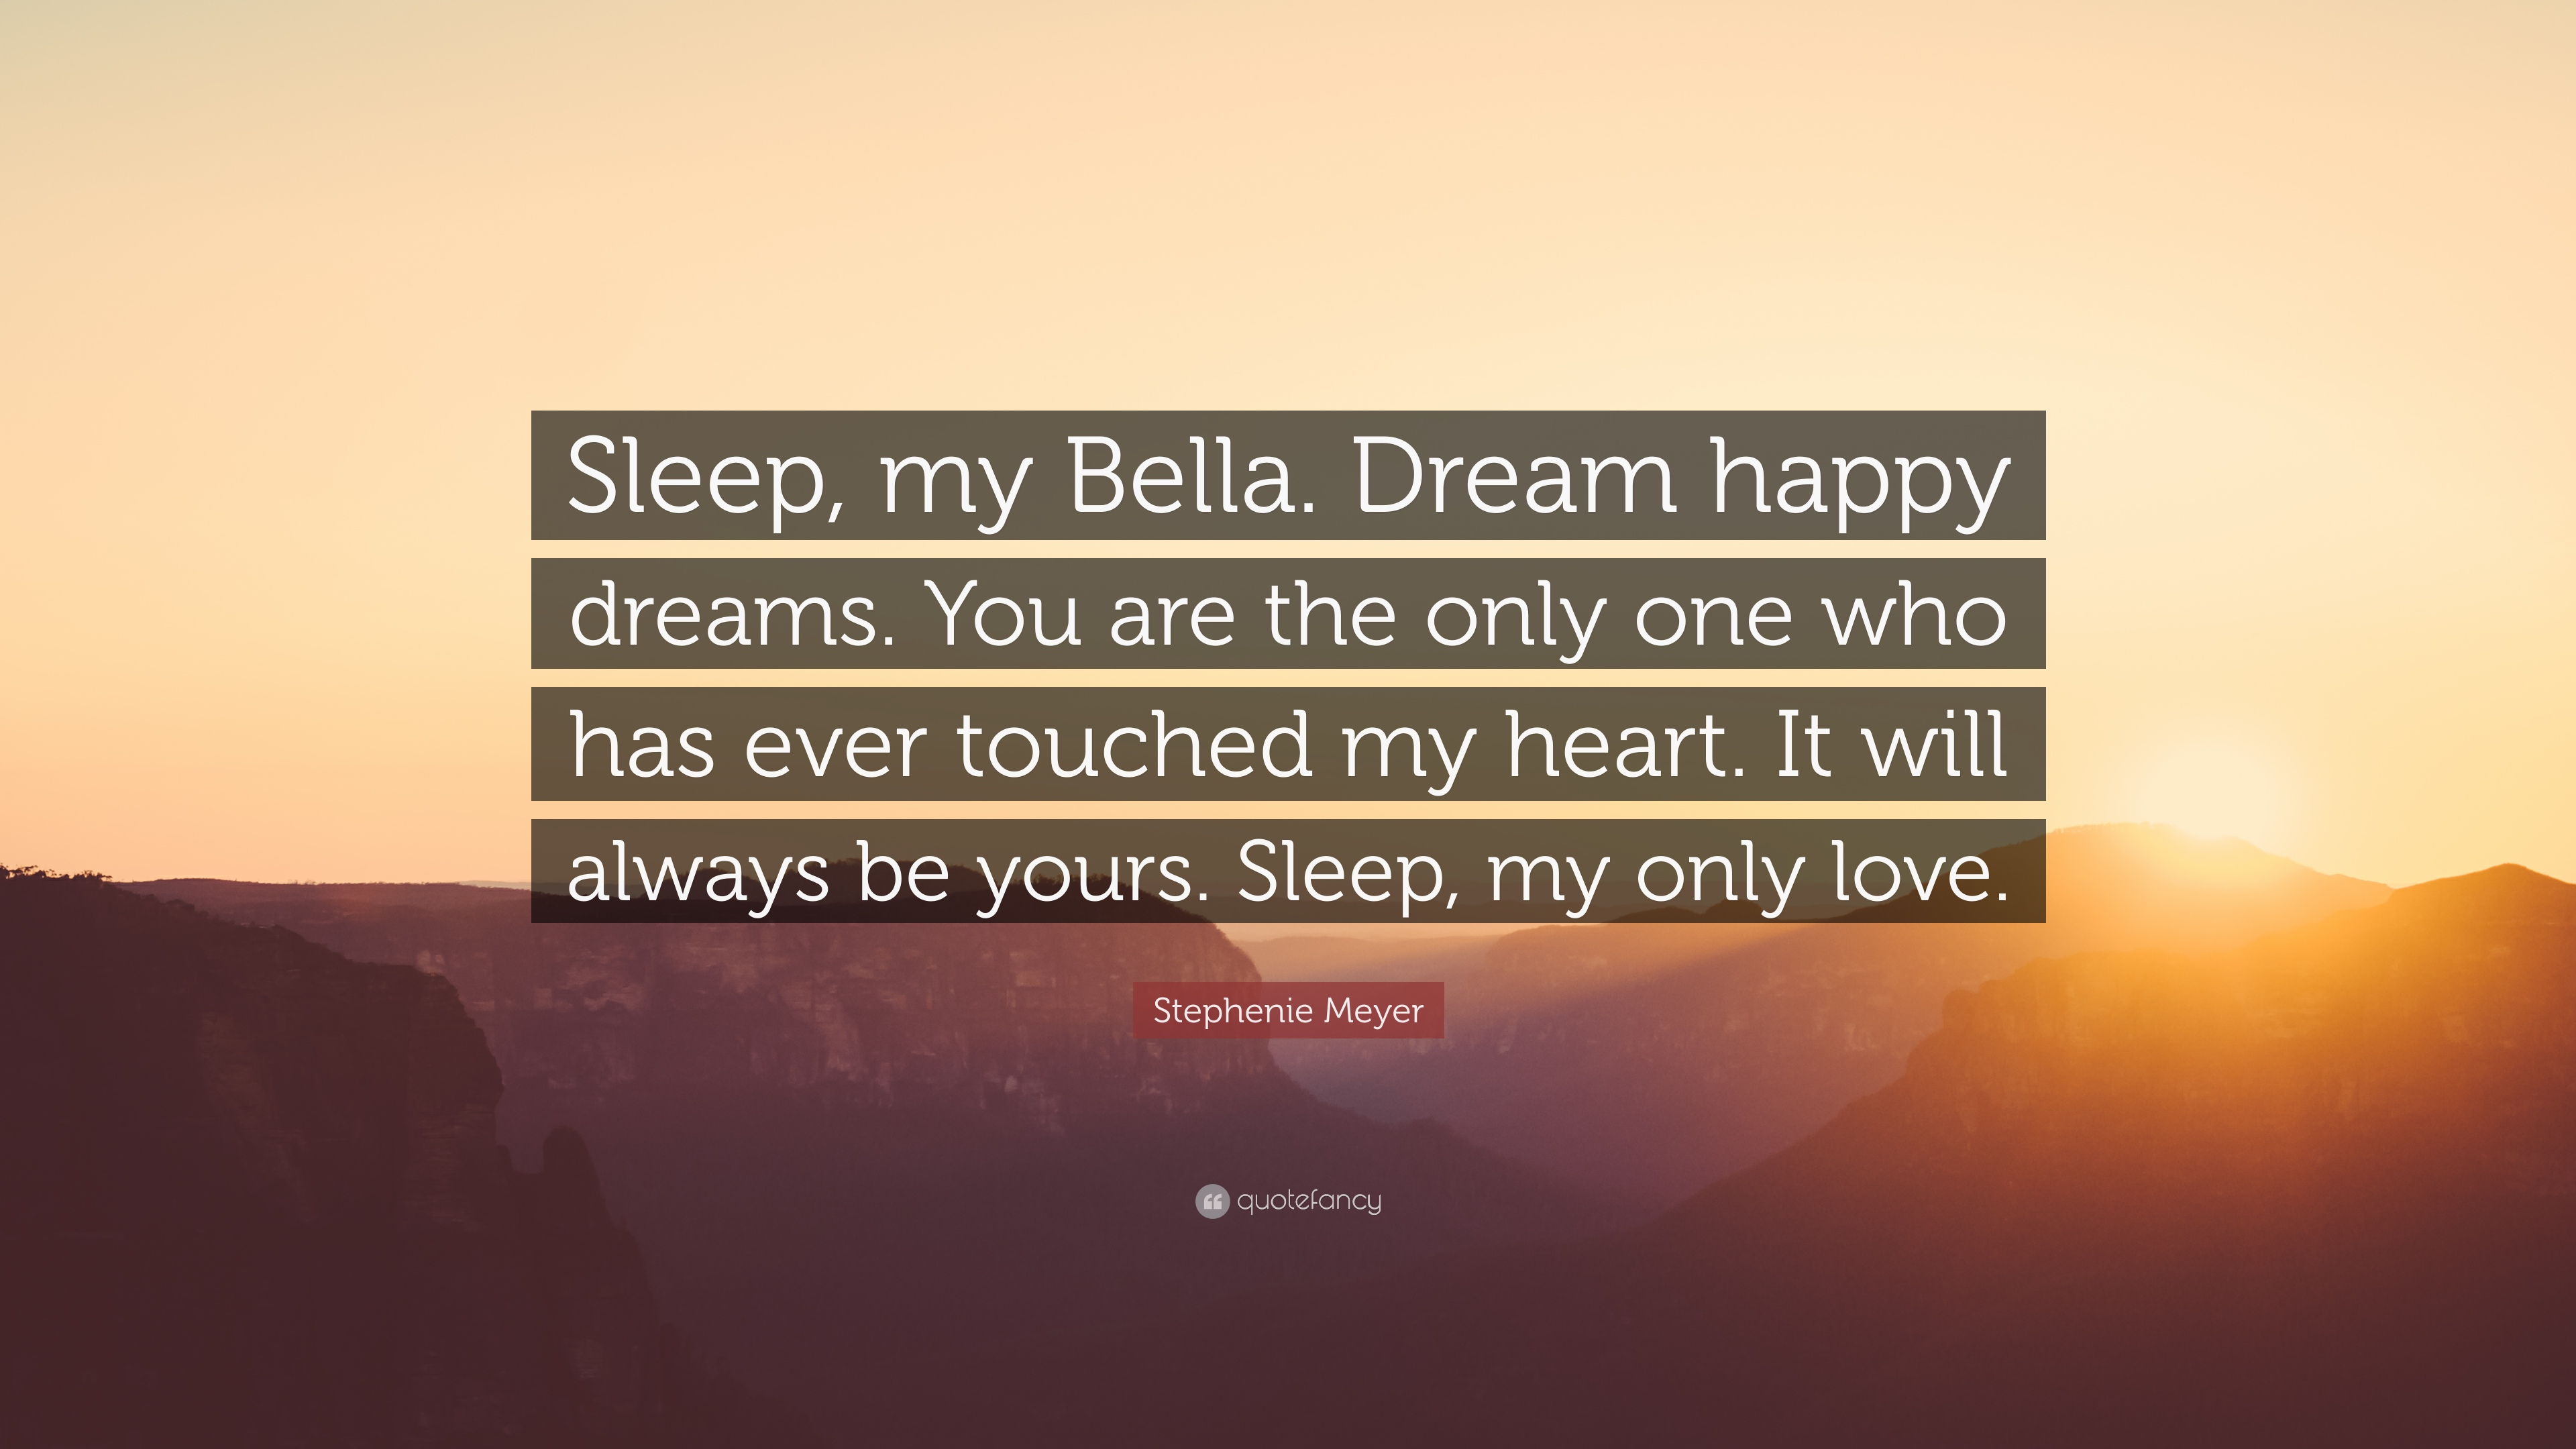 Stephenie Meyer Quote: U201cSleep, My Bella. Dream Happy Dreams. You Are